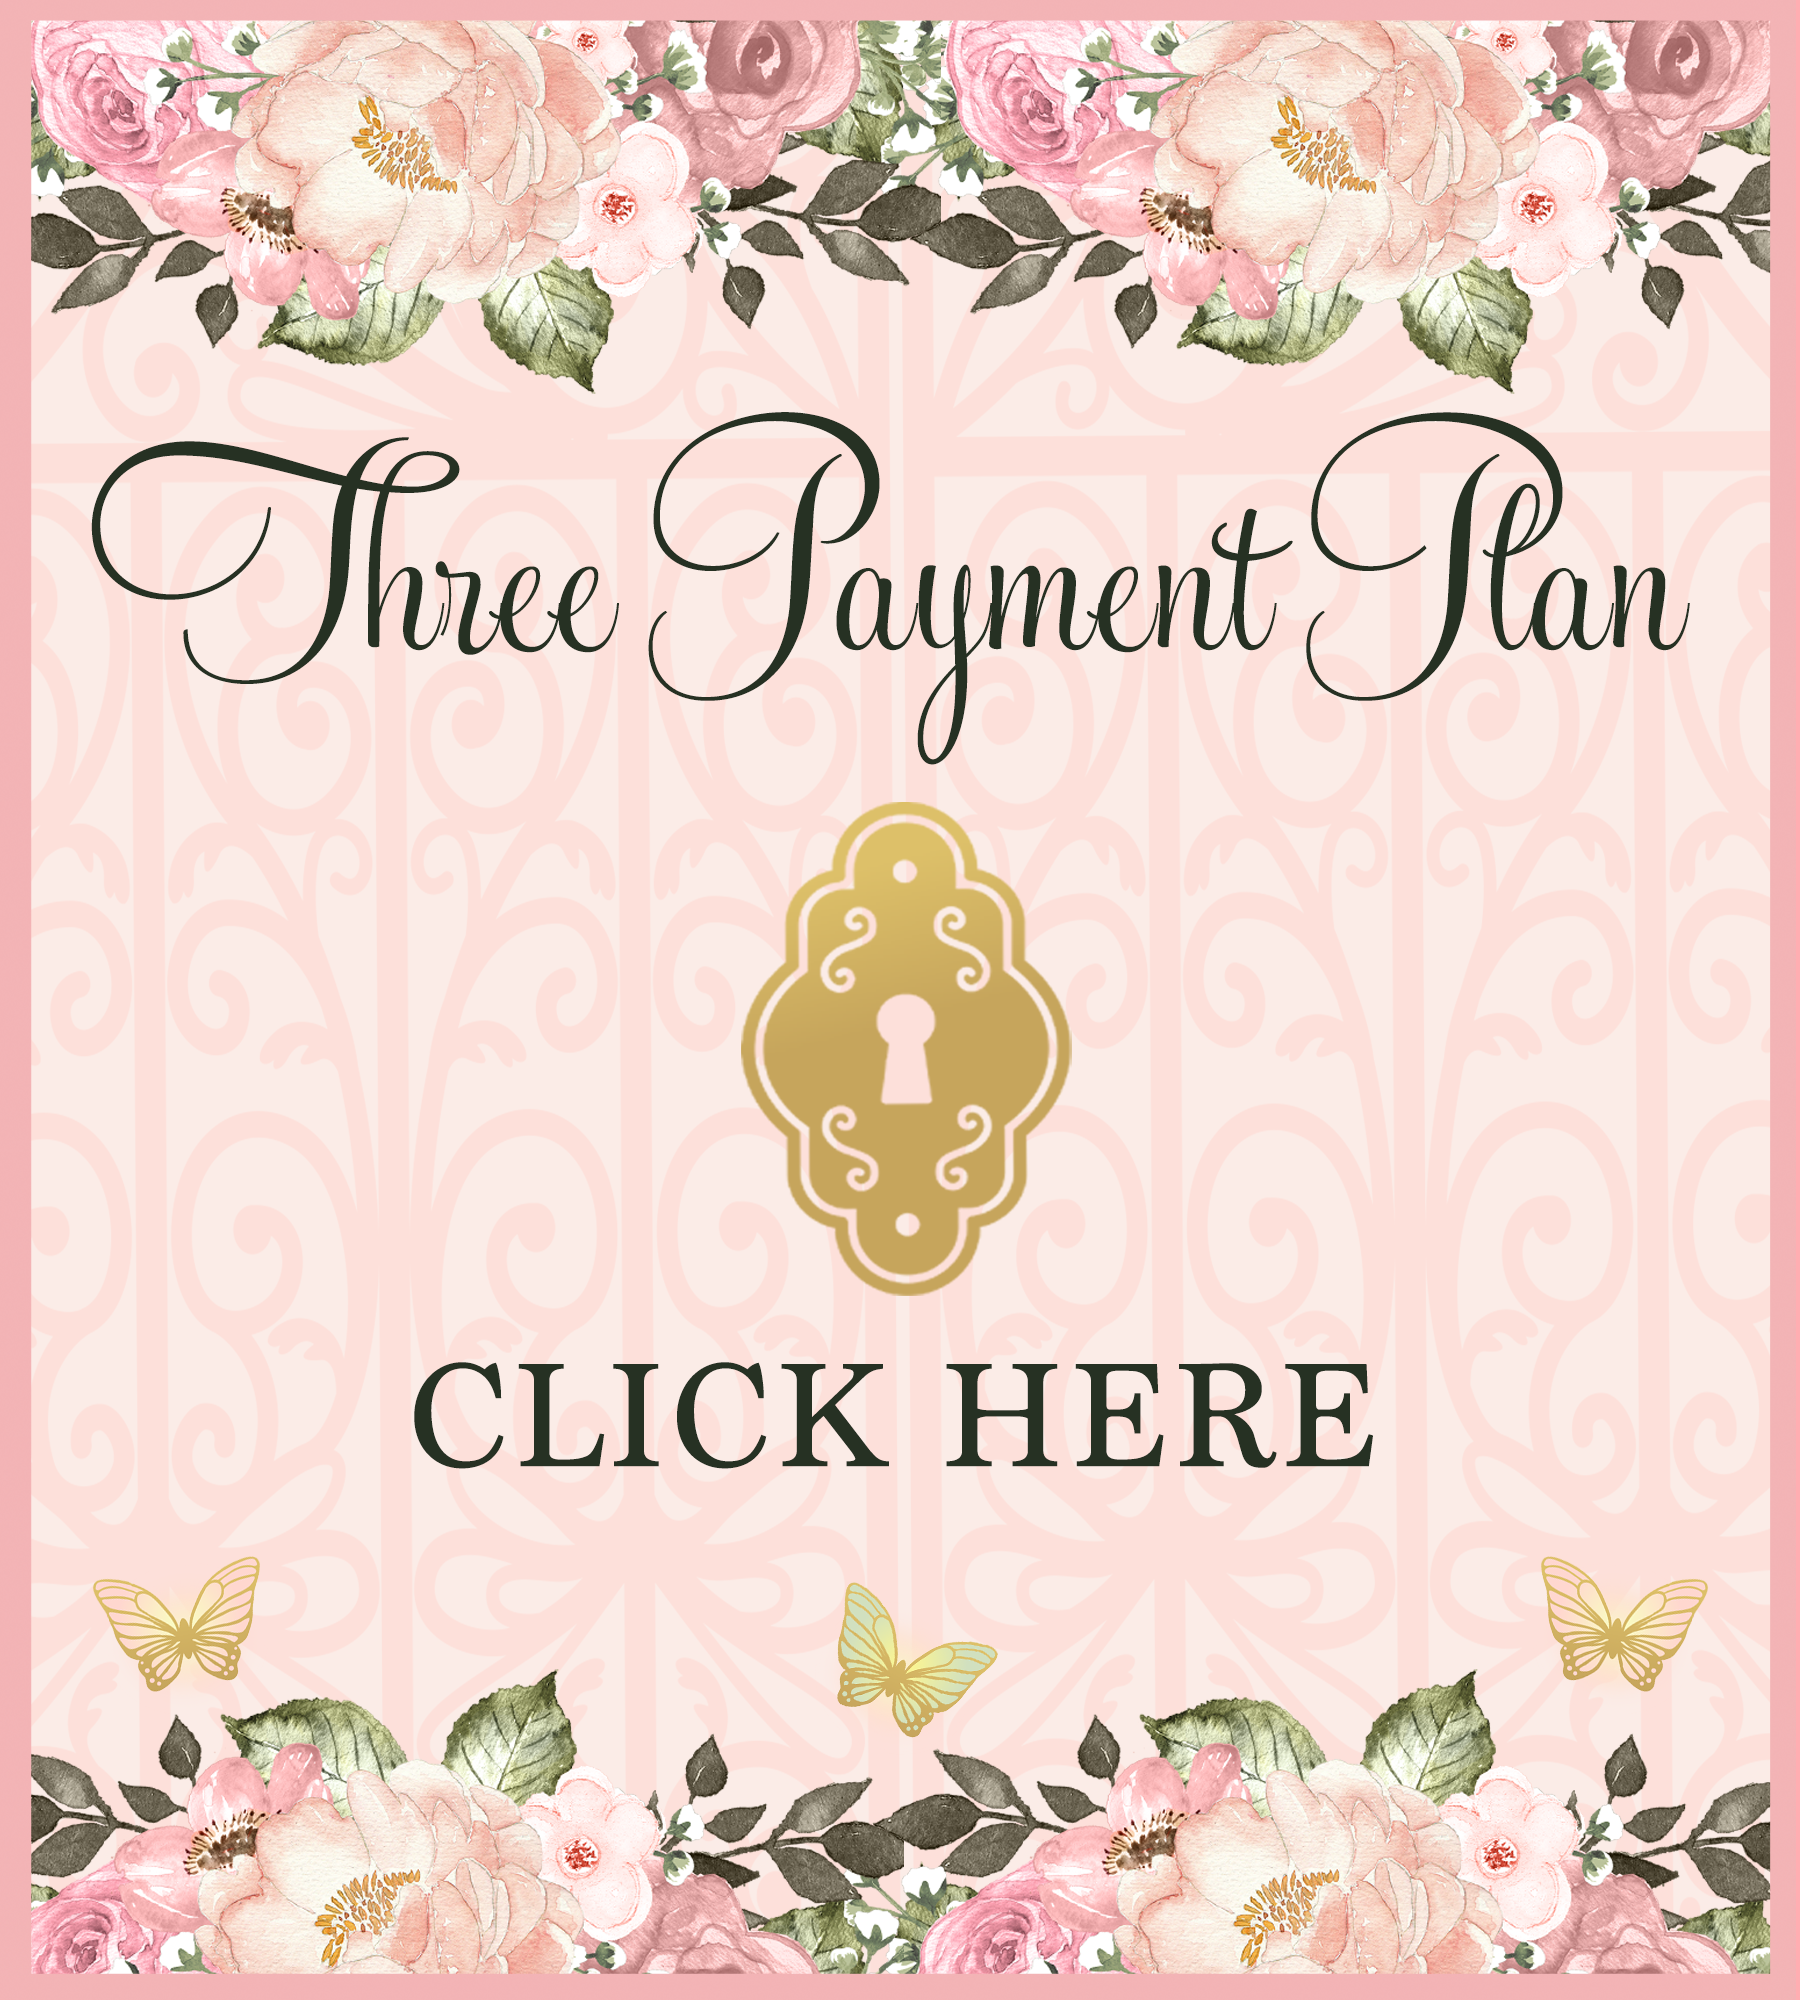 A Secret Garden Affaire (Final Payment on Three Payment Plan)